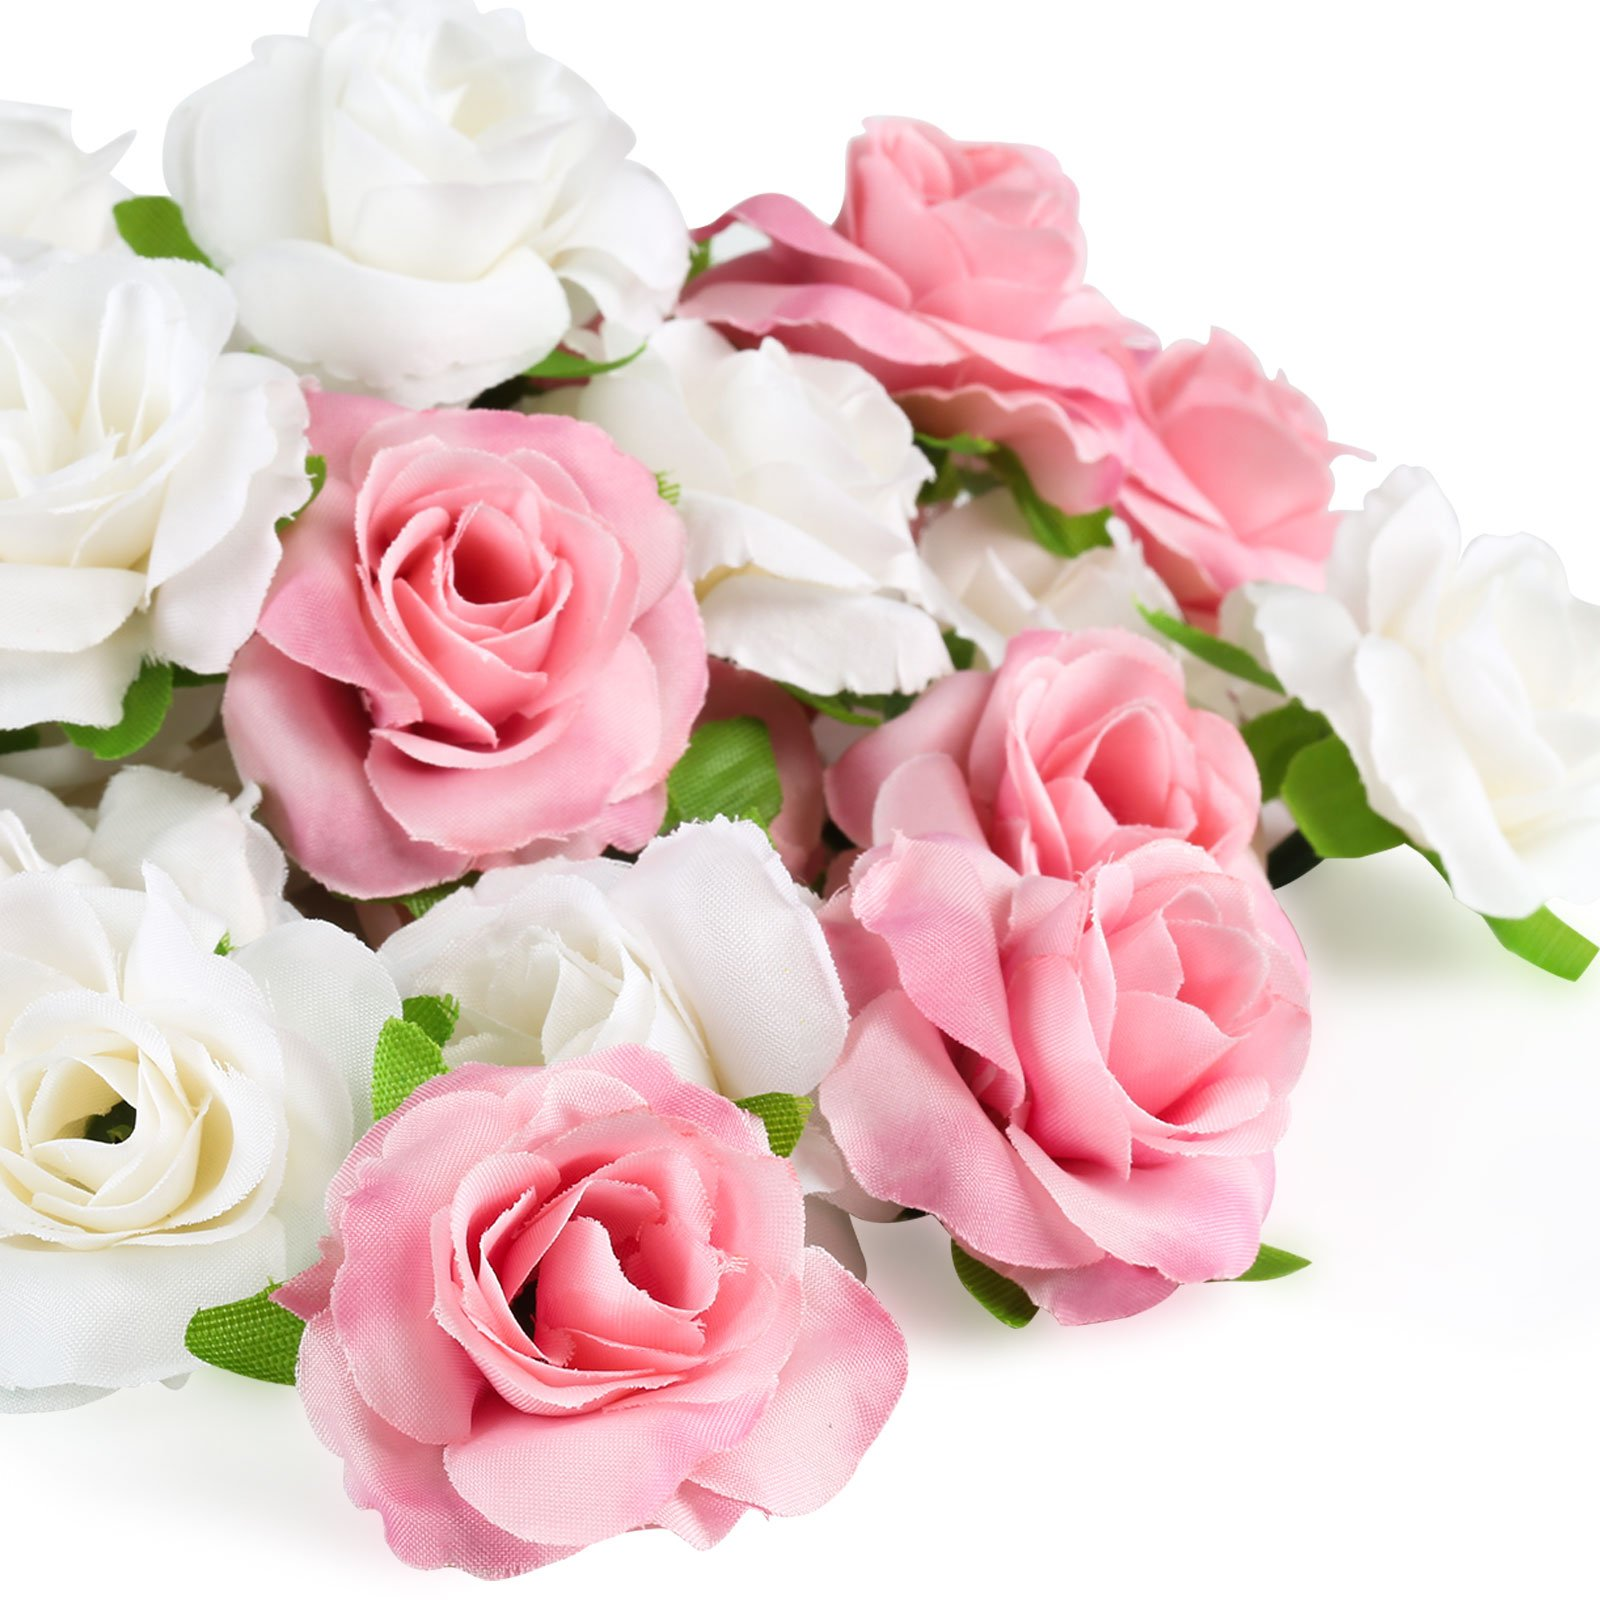 Amazon.com: Kesoto 50 Pcs Artificial Rose Flower Head, Pink and White Real  Touch Artificial Roses for Wedding Bouquet Decoration Home Decor Party  Supplies: Kitchen & Dining